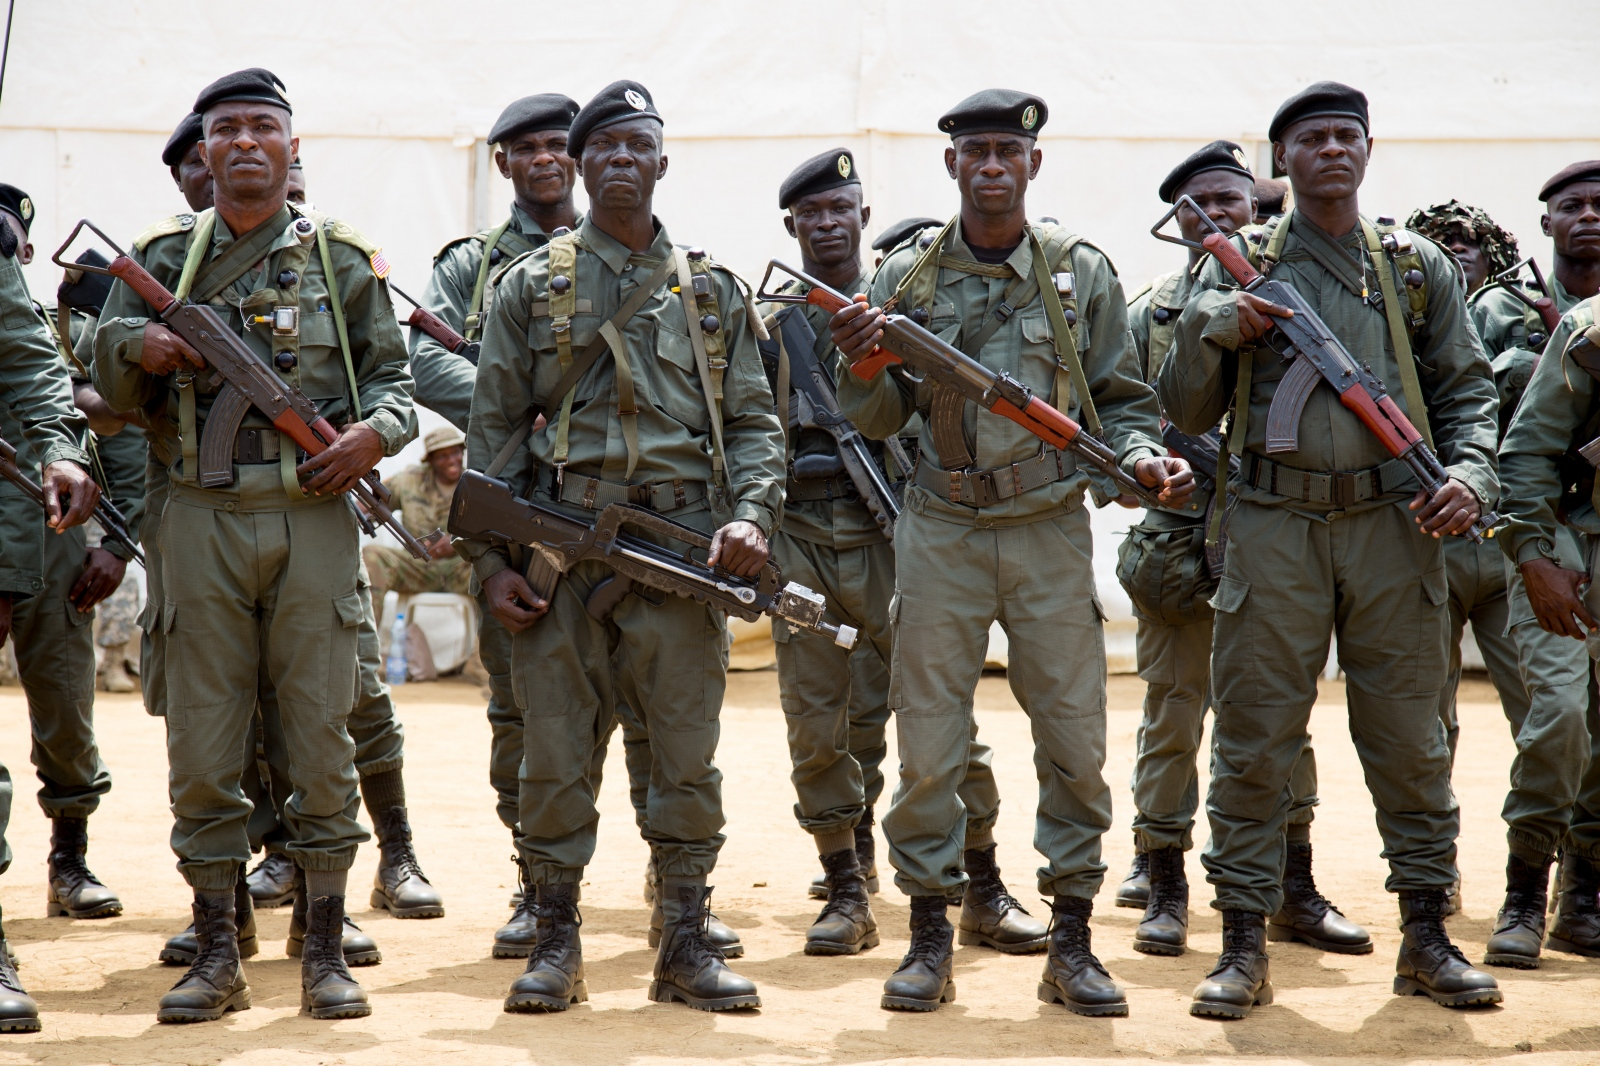 Congolese soldiers prepare for jungle training for the Central Accord in Gabon Africa.